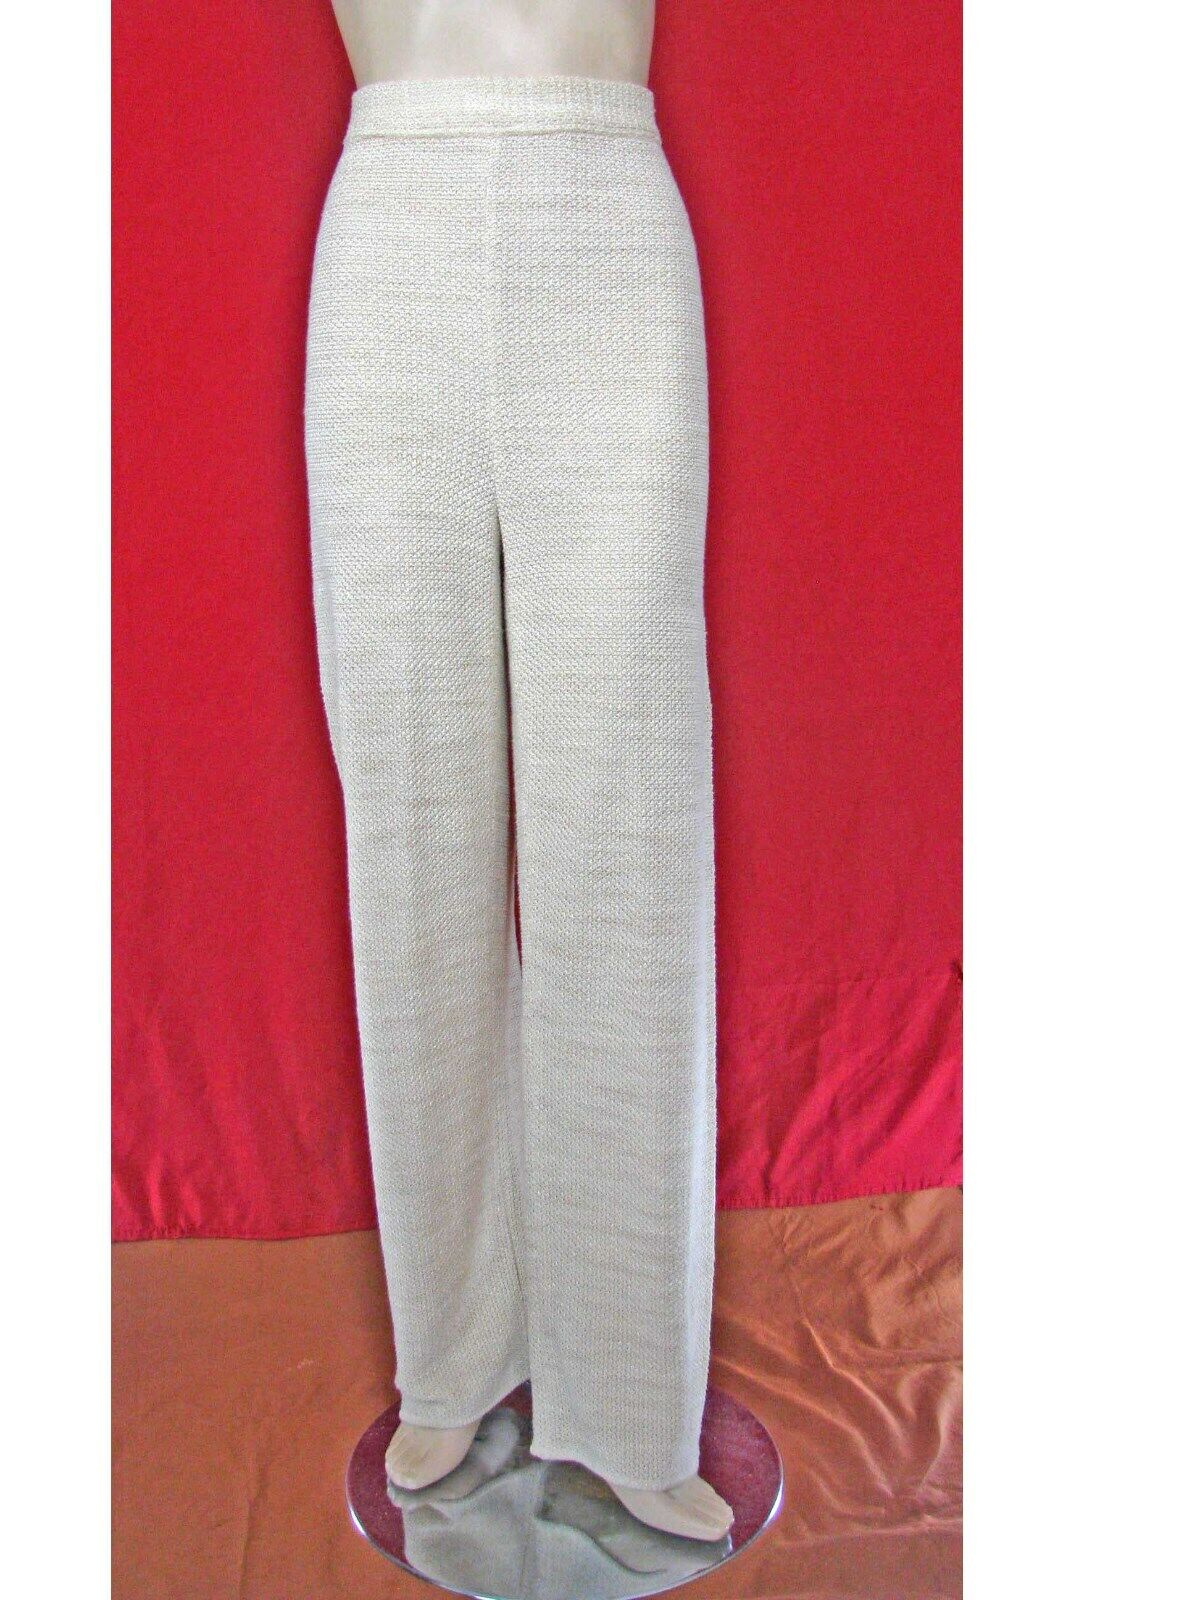 Vtg Escada Margaretha Ley Knit Pants Made in Germany sz 40